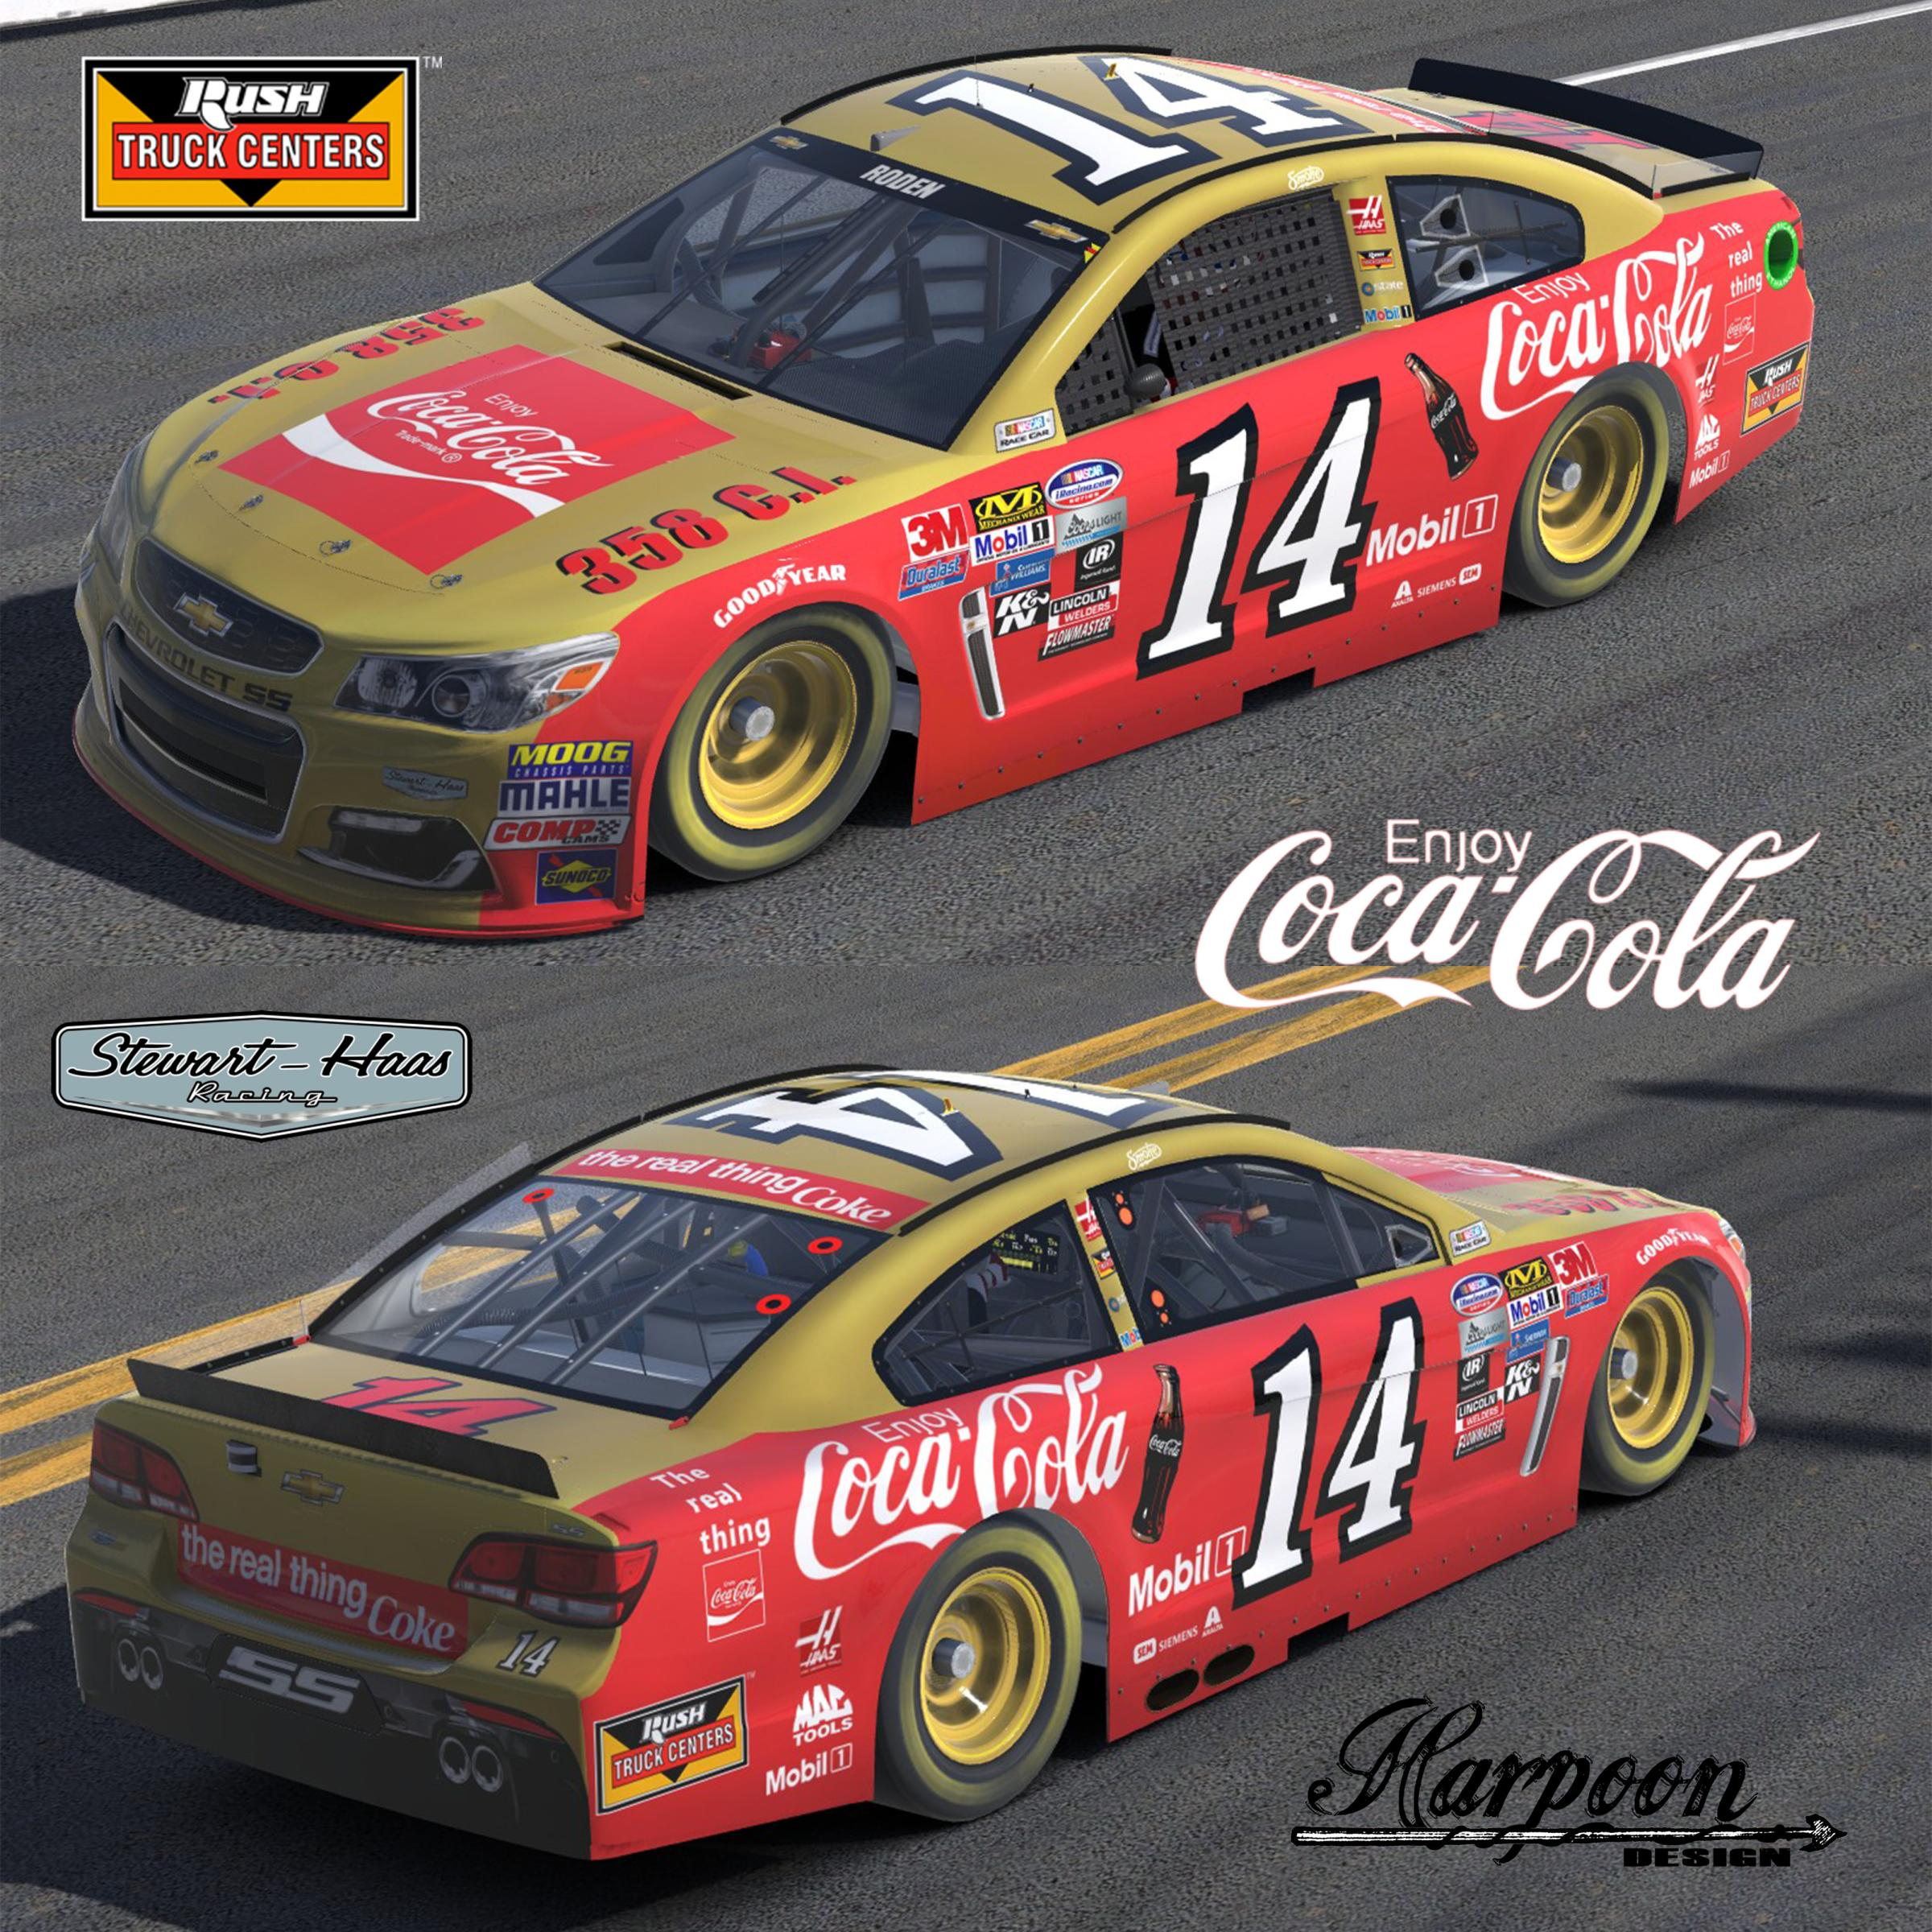 Preview of Tony Stewart Darlington Throwback Coke Scheme by Brantley Roden